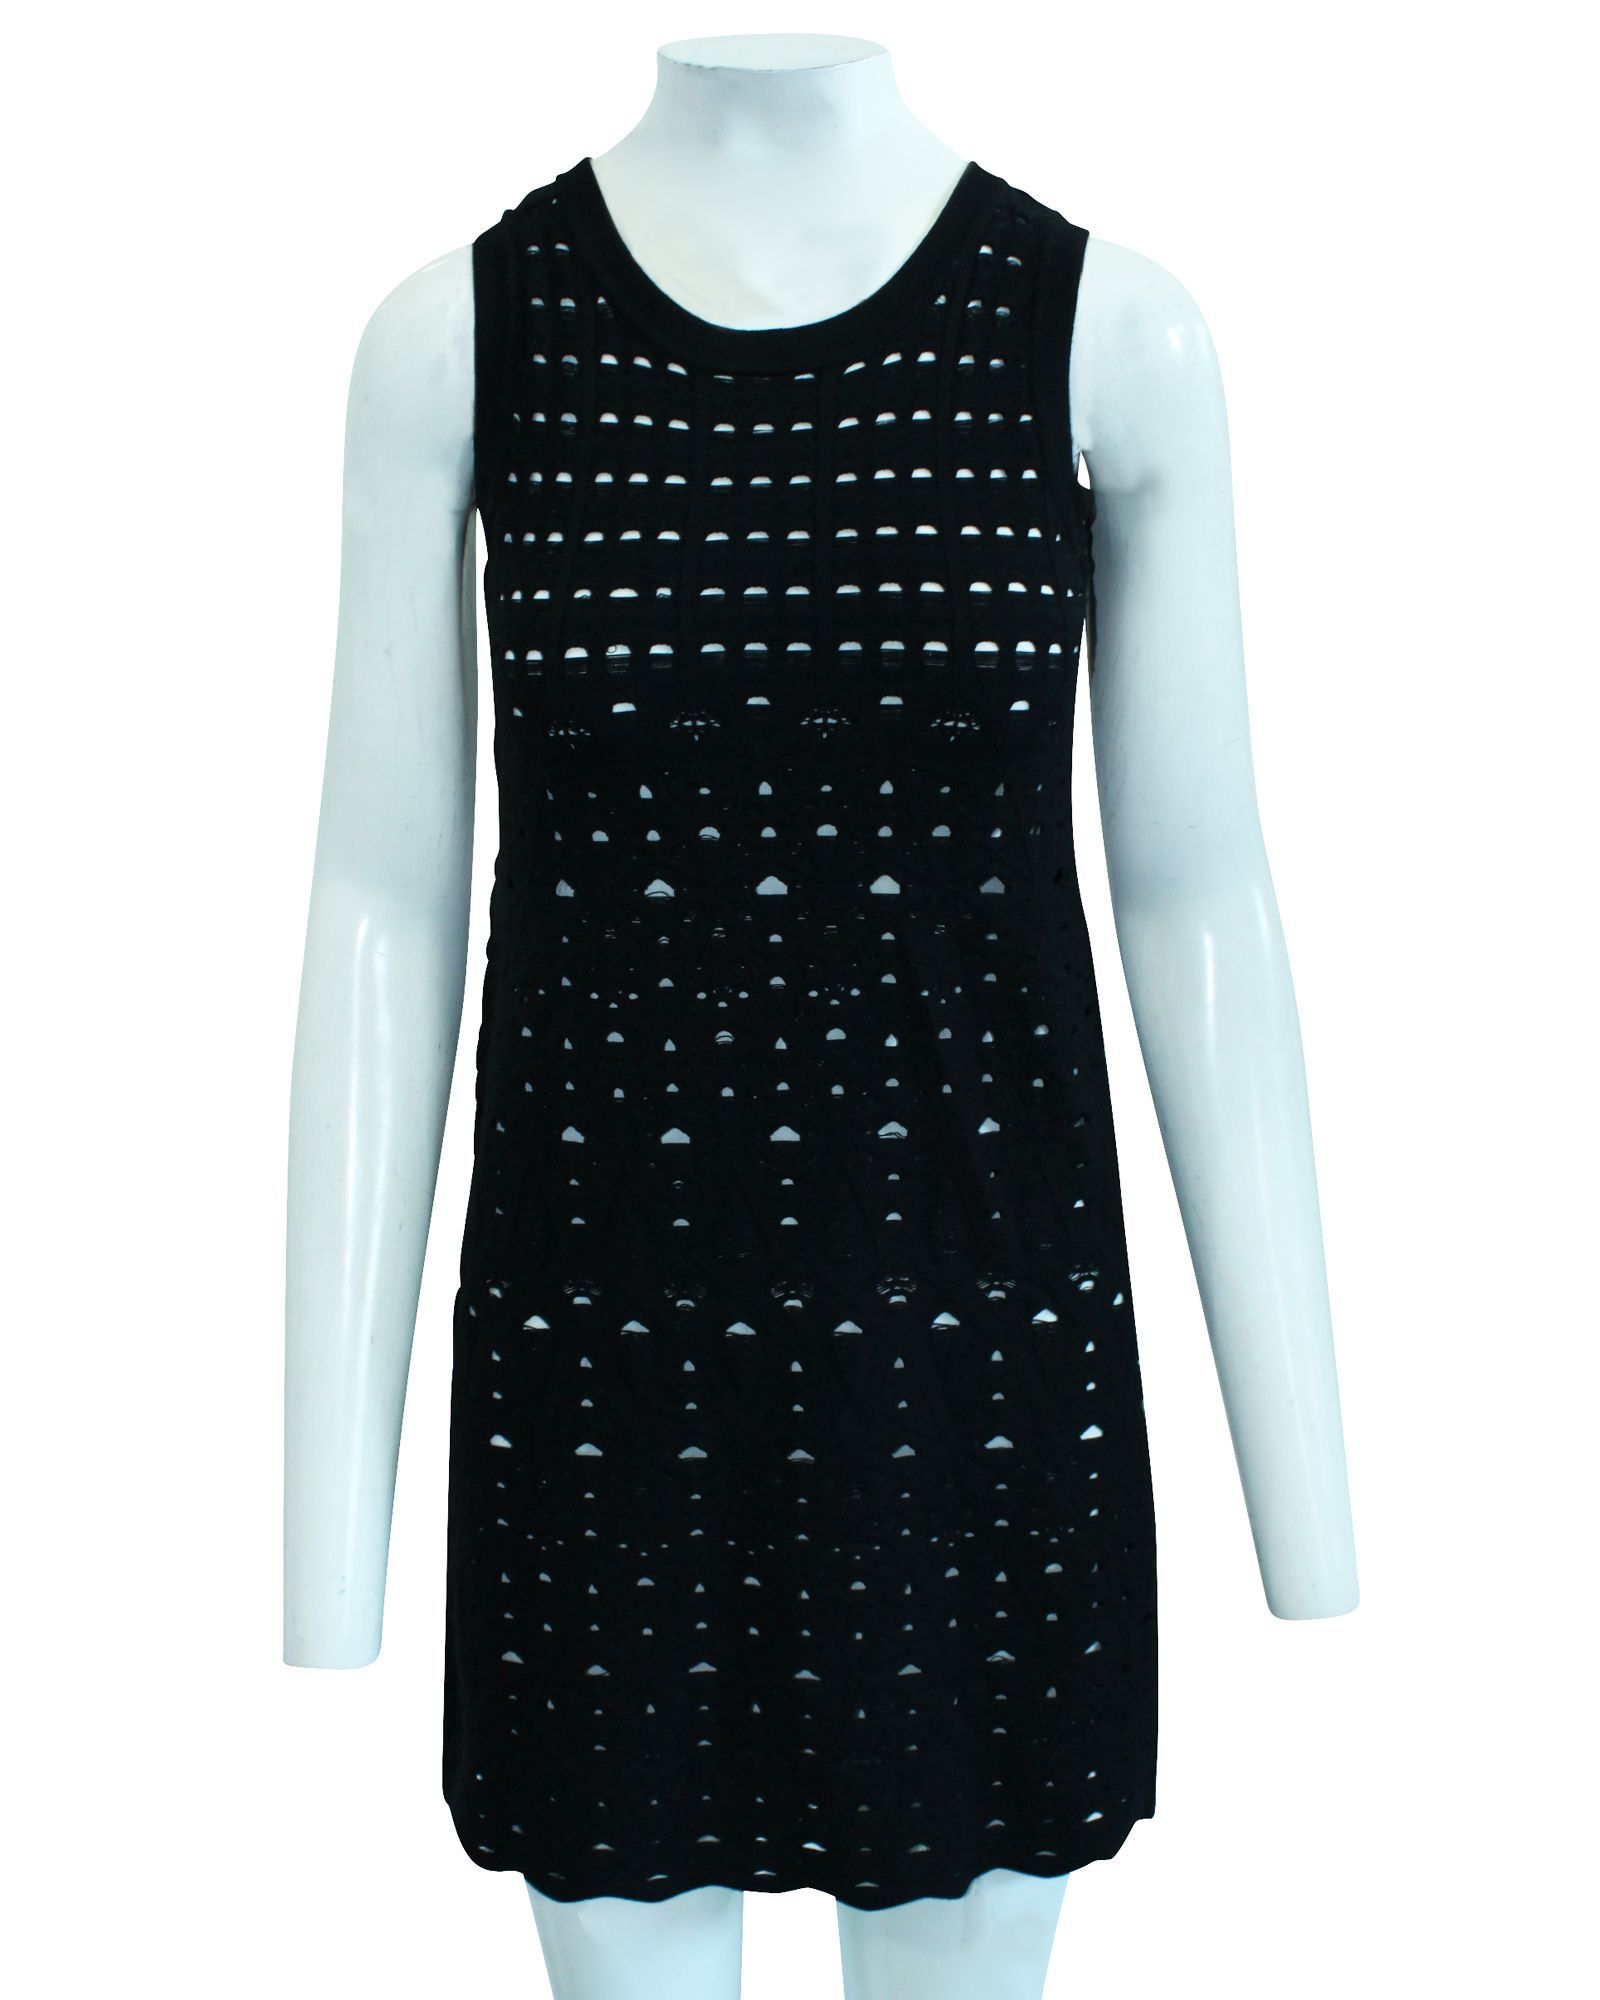 Chanel Knitted Dress -Pre Owned Condition Very Good